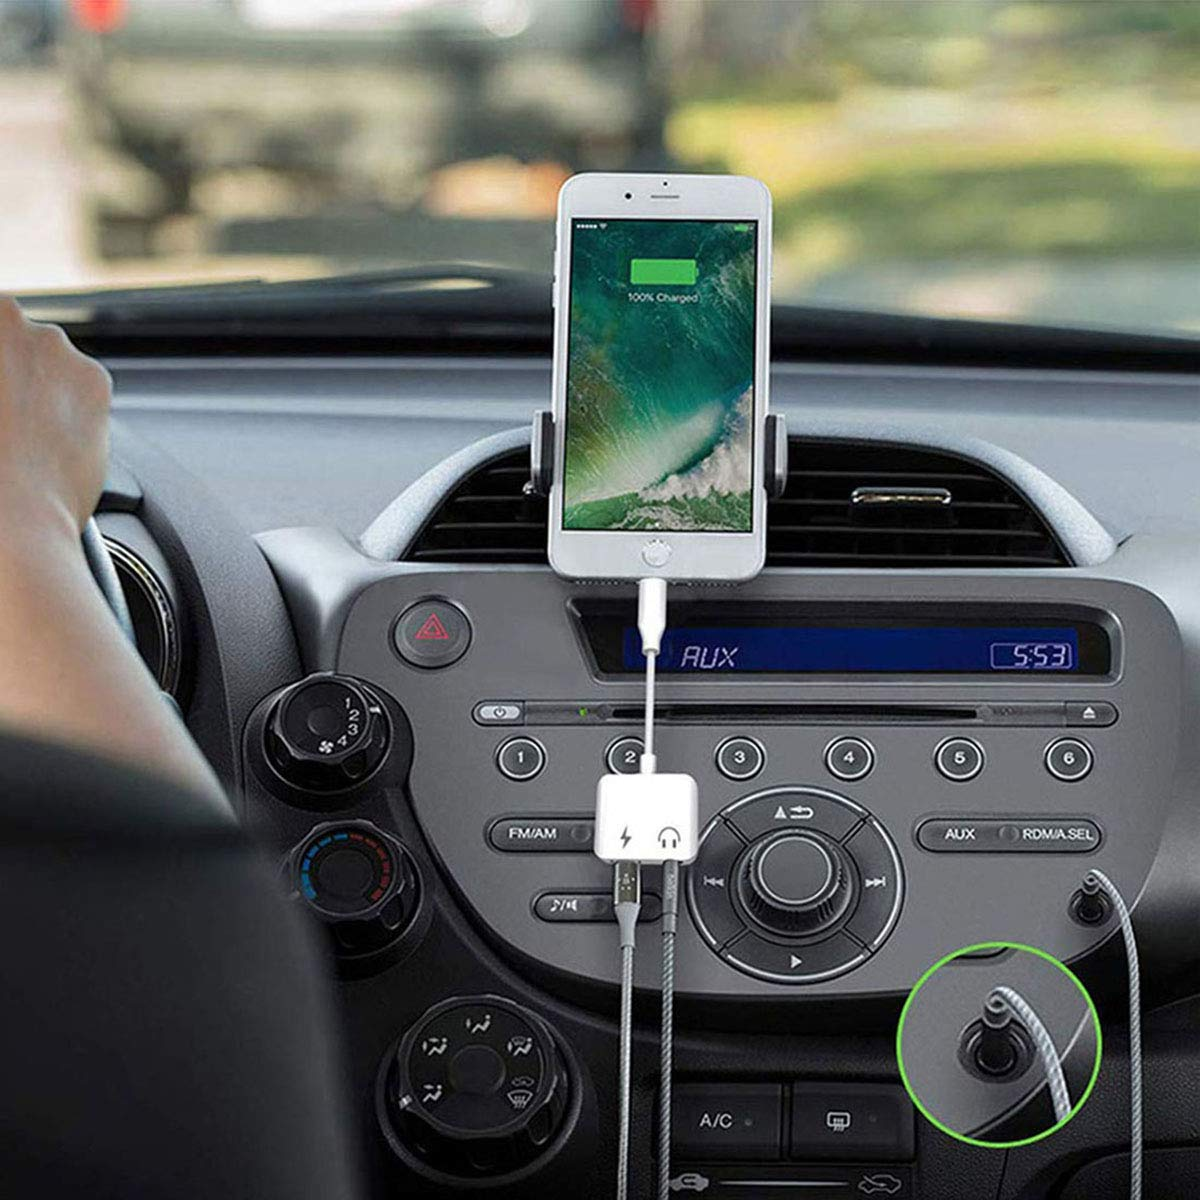 Headphone Jack Adapter Dongle for iPhone Xs//Xs Max//XR//8//11 Pro//X 10 //11//7//7 Plus to 3.5mm Jack Converter Car Charge Accessories Cables /& Audio Connector Earphone Splitter Adaptor Support All Systems